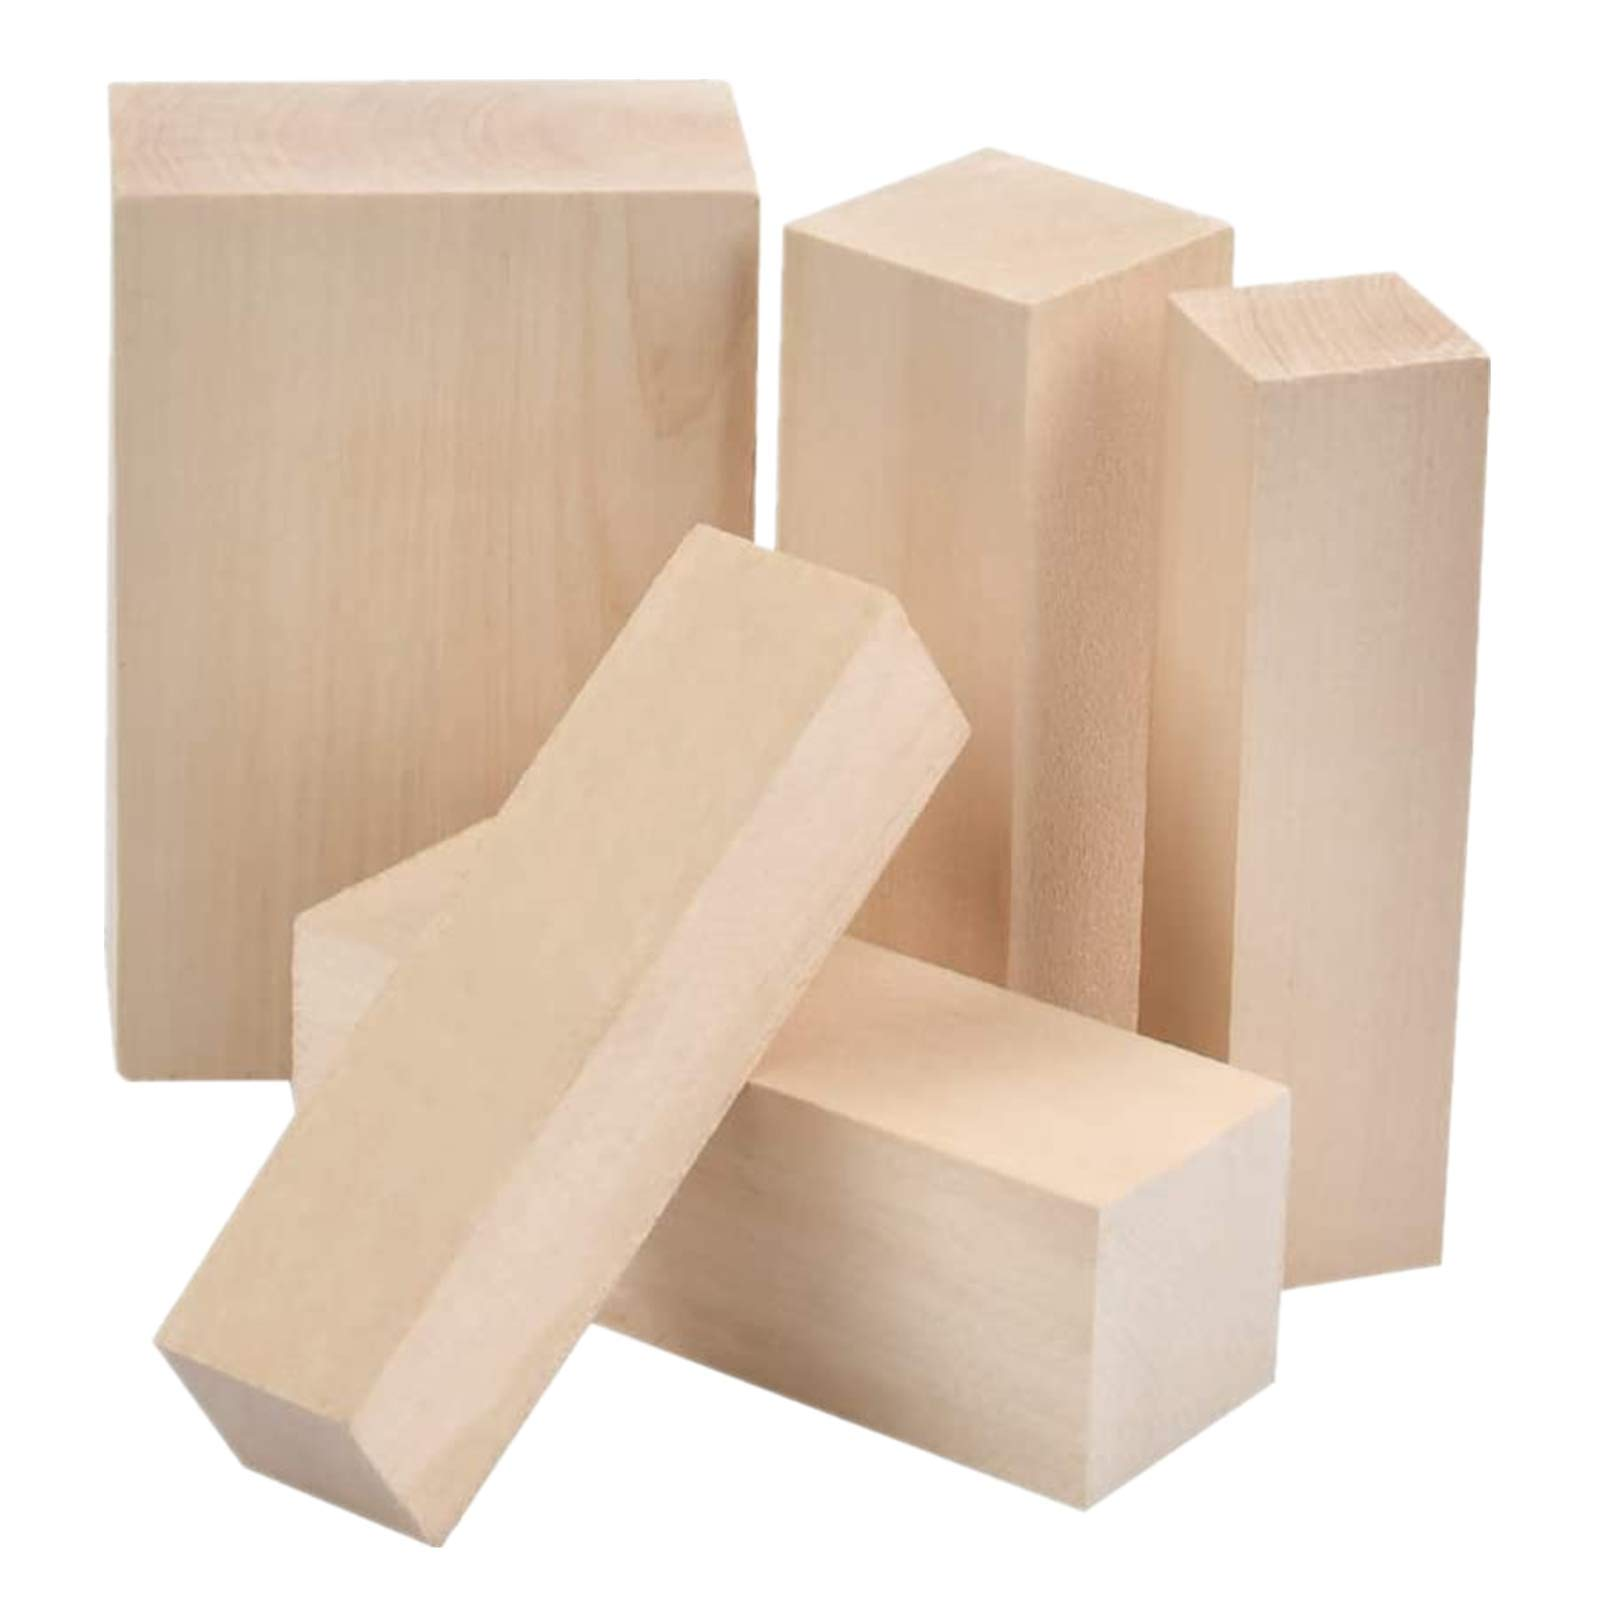 WOWOSS 8 Pack Unfinished Basswood Carving Blocks Kit Premium Kiln Dried Whittling Soft Wood Carving Block Hobby Set for Kids Adults Beginner to Expert